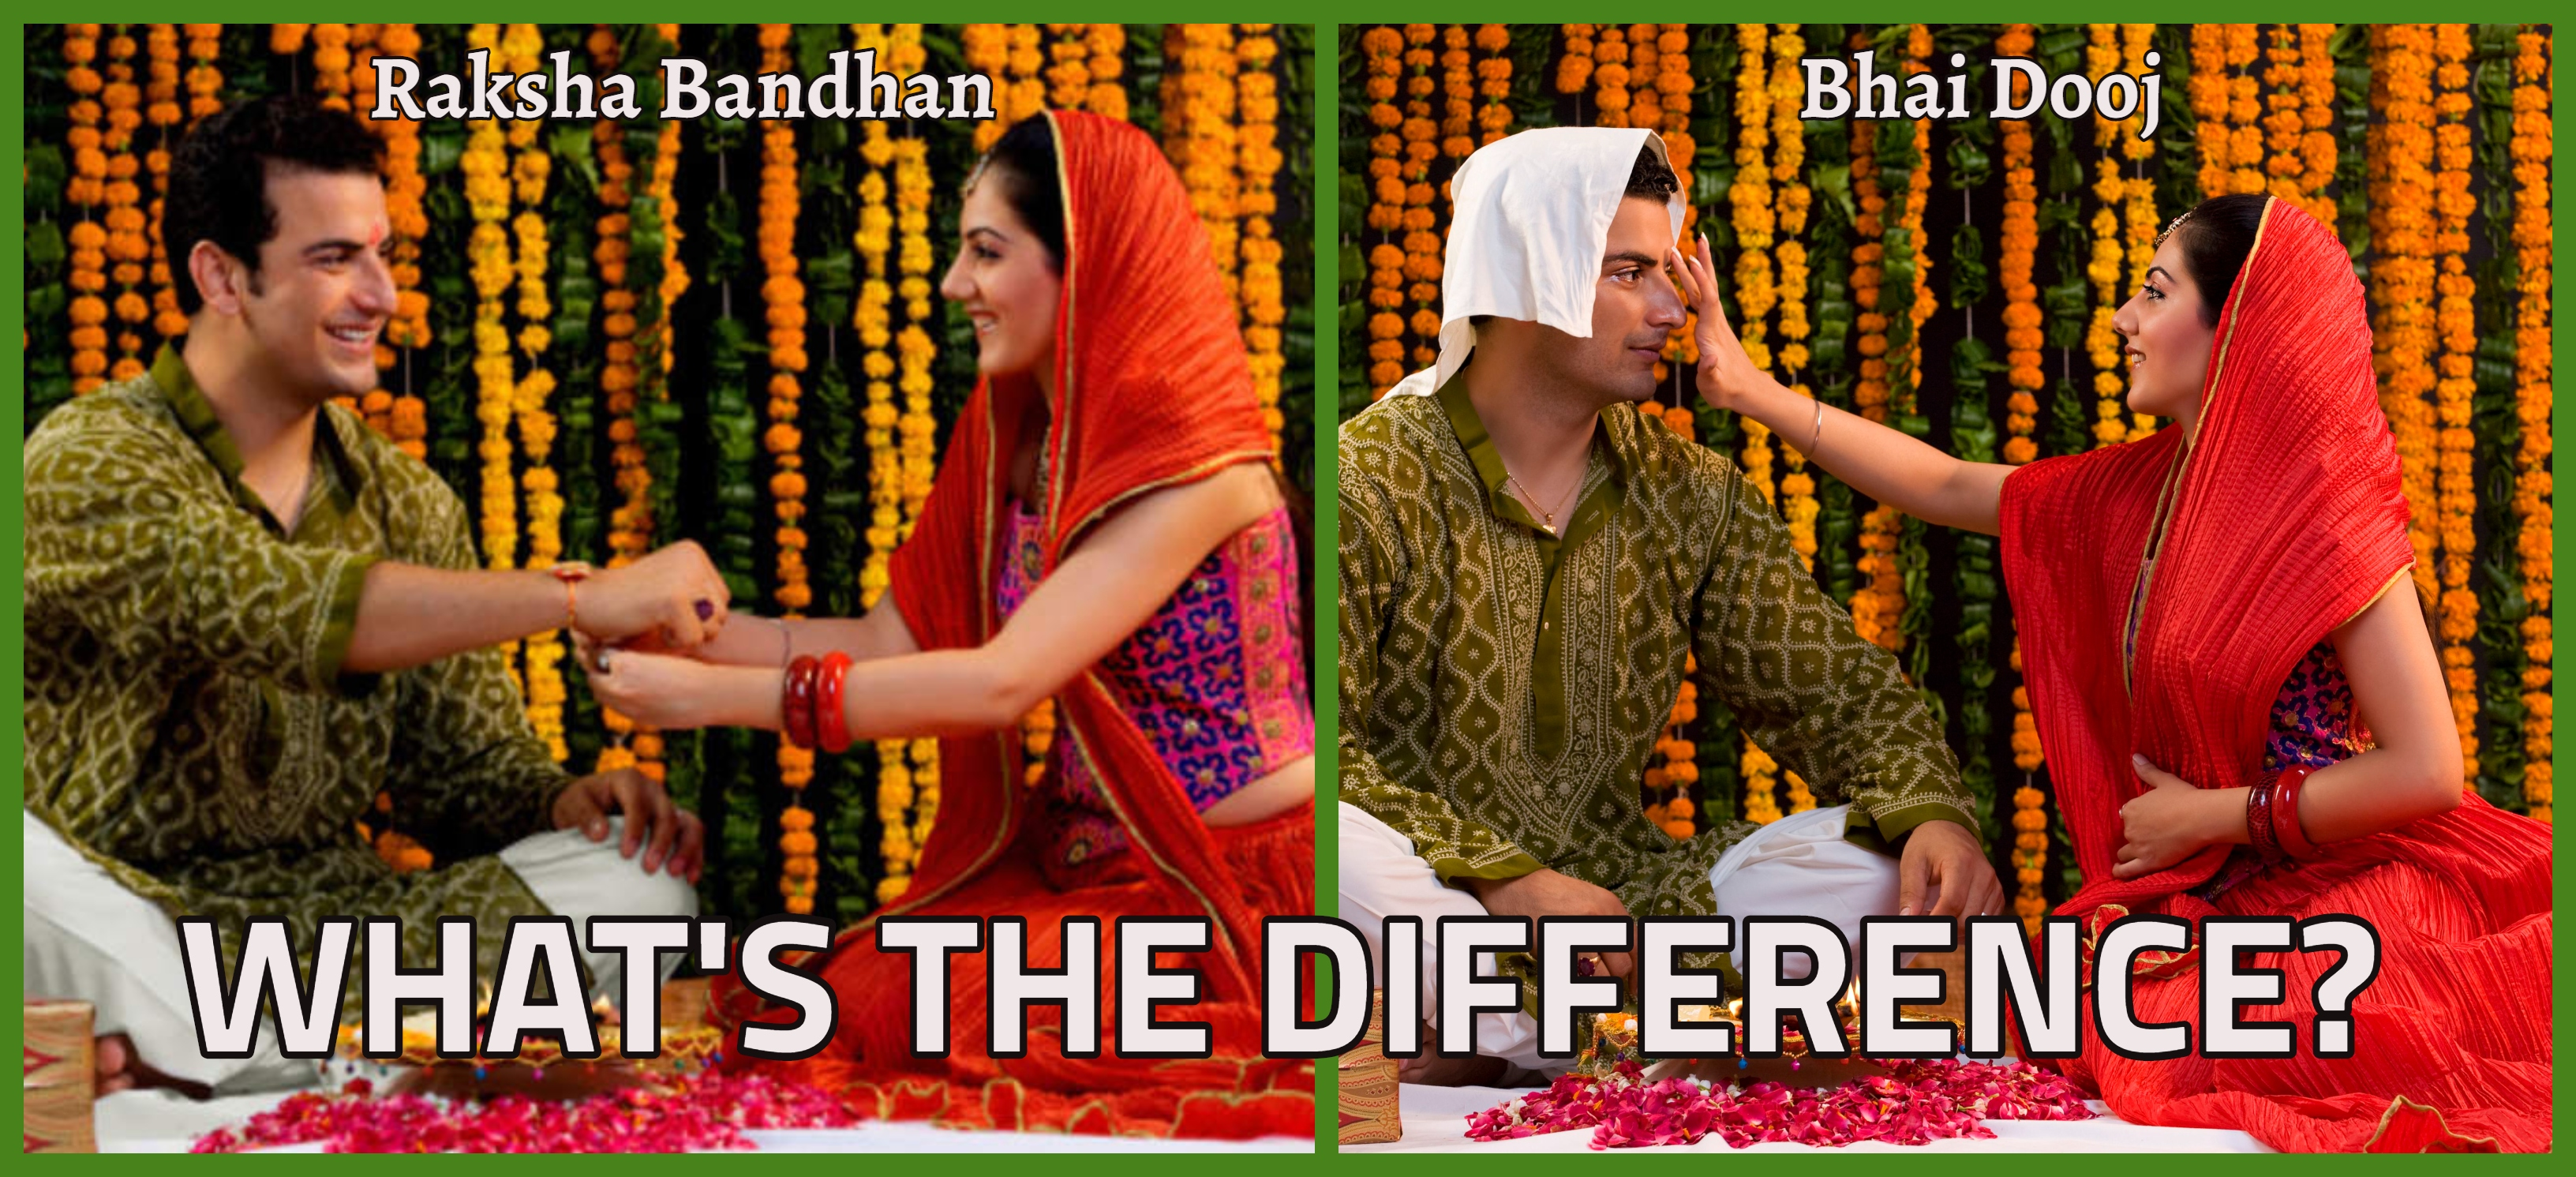 What Makes Bhai Dooj Different From Raksha Bandhan?